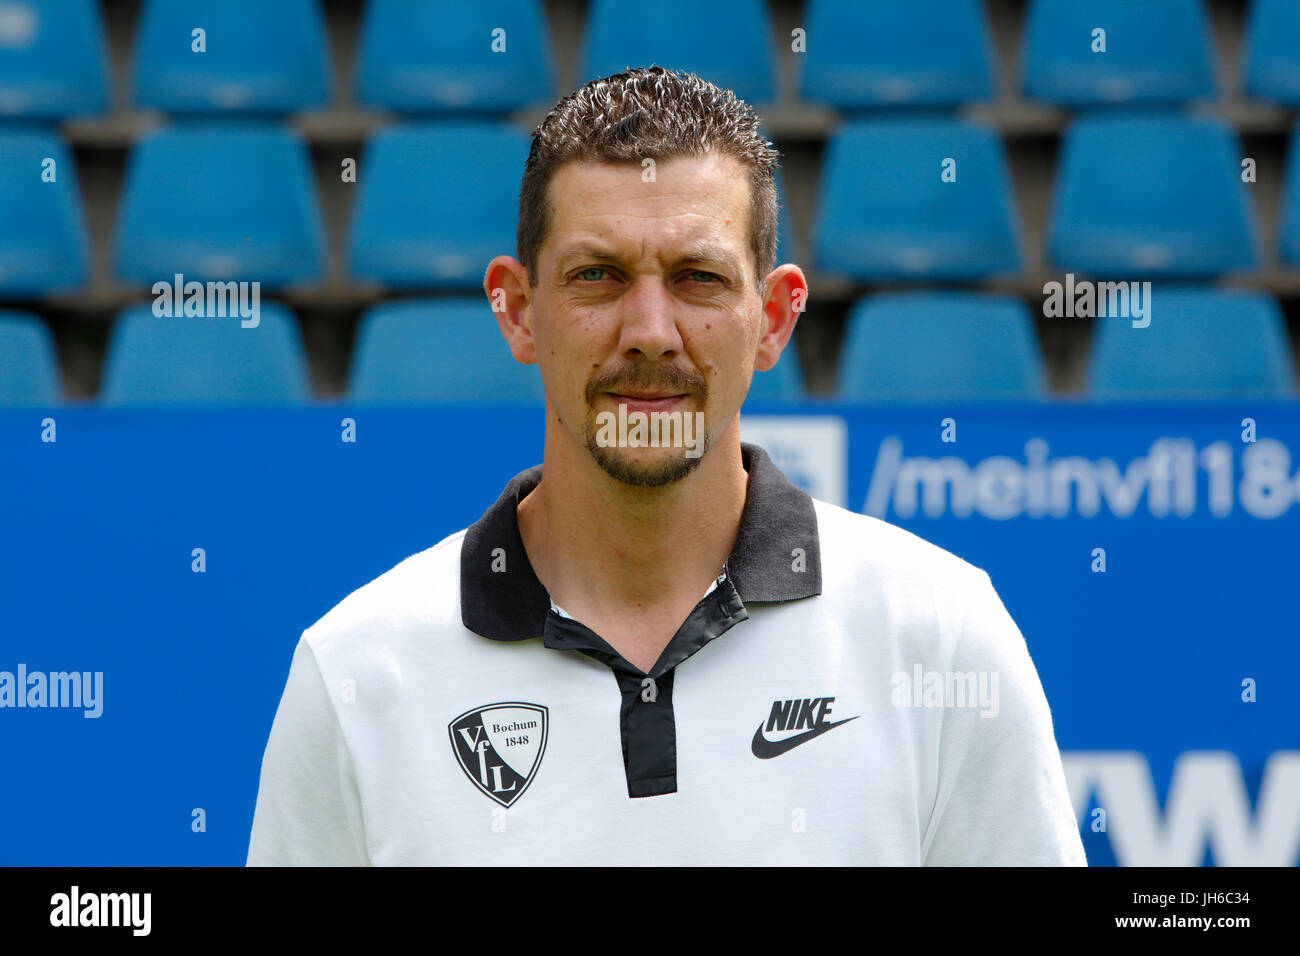 football, 2. Bundesliga, 2017/2018, VfL Bochum, team presentation for the game season, kitman Markus Kloefkorn - Stock Image